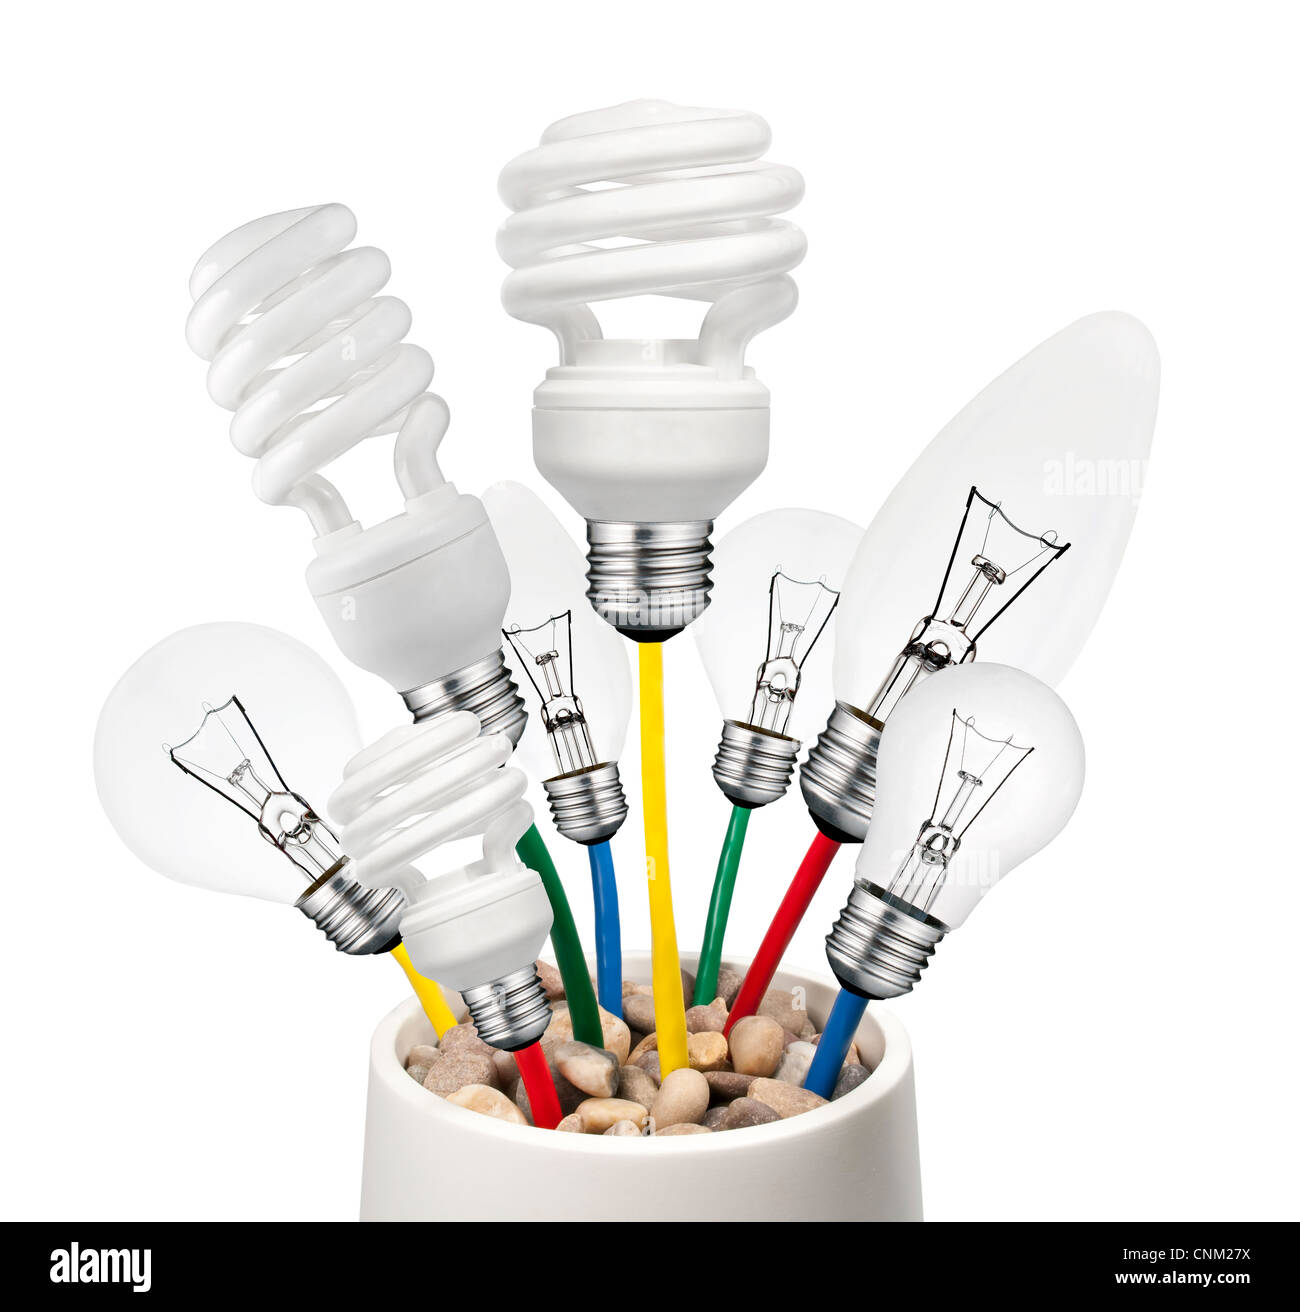 New Ideas - Problem Solution - ligth bulbs growing out of a pot - Stock Image